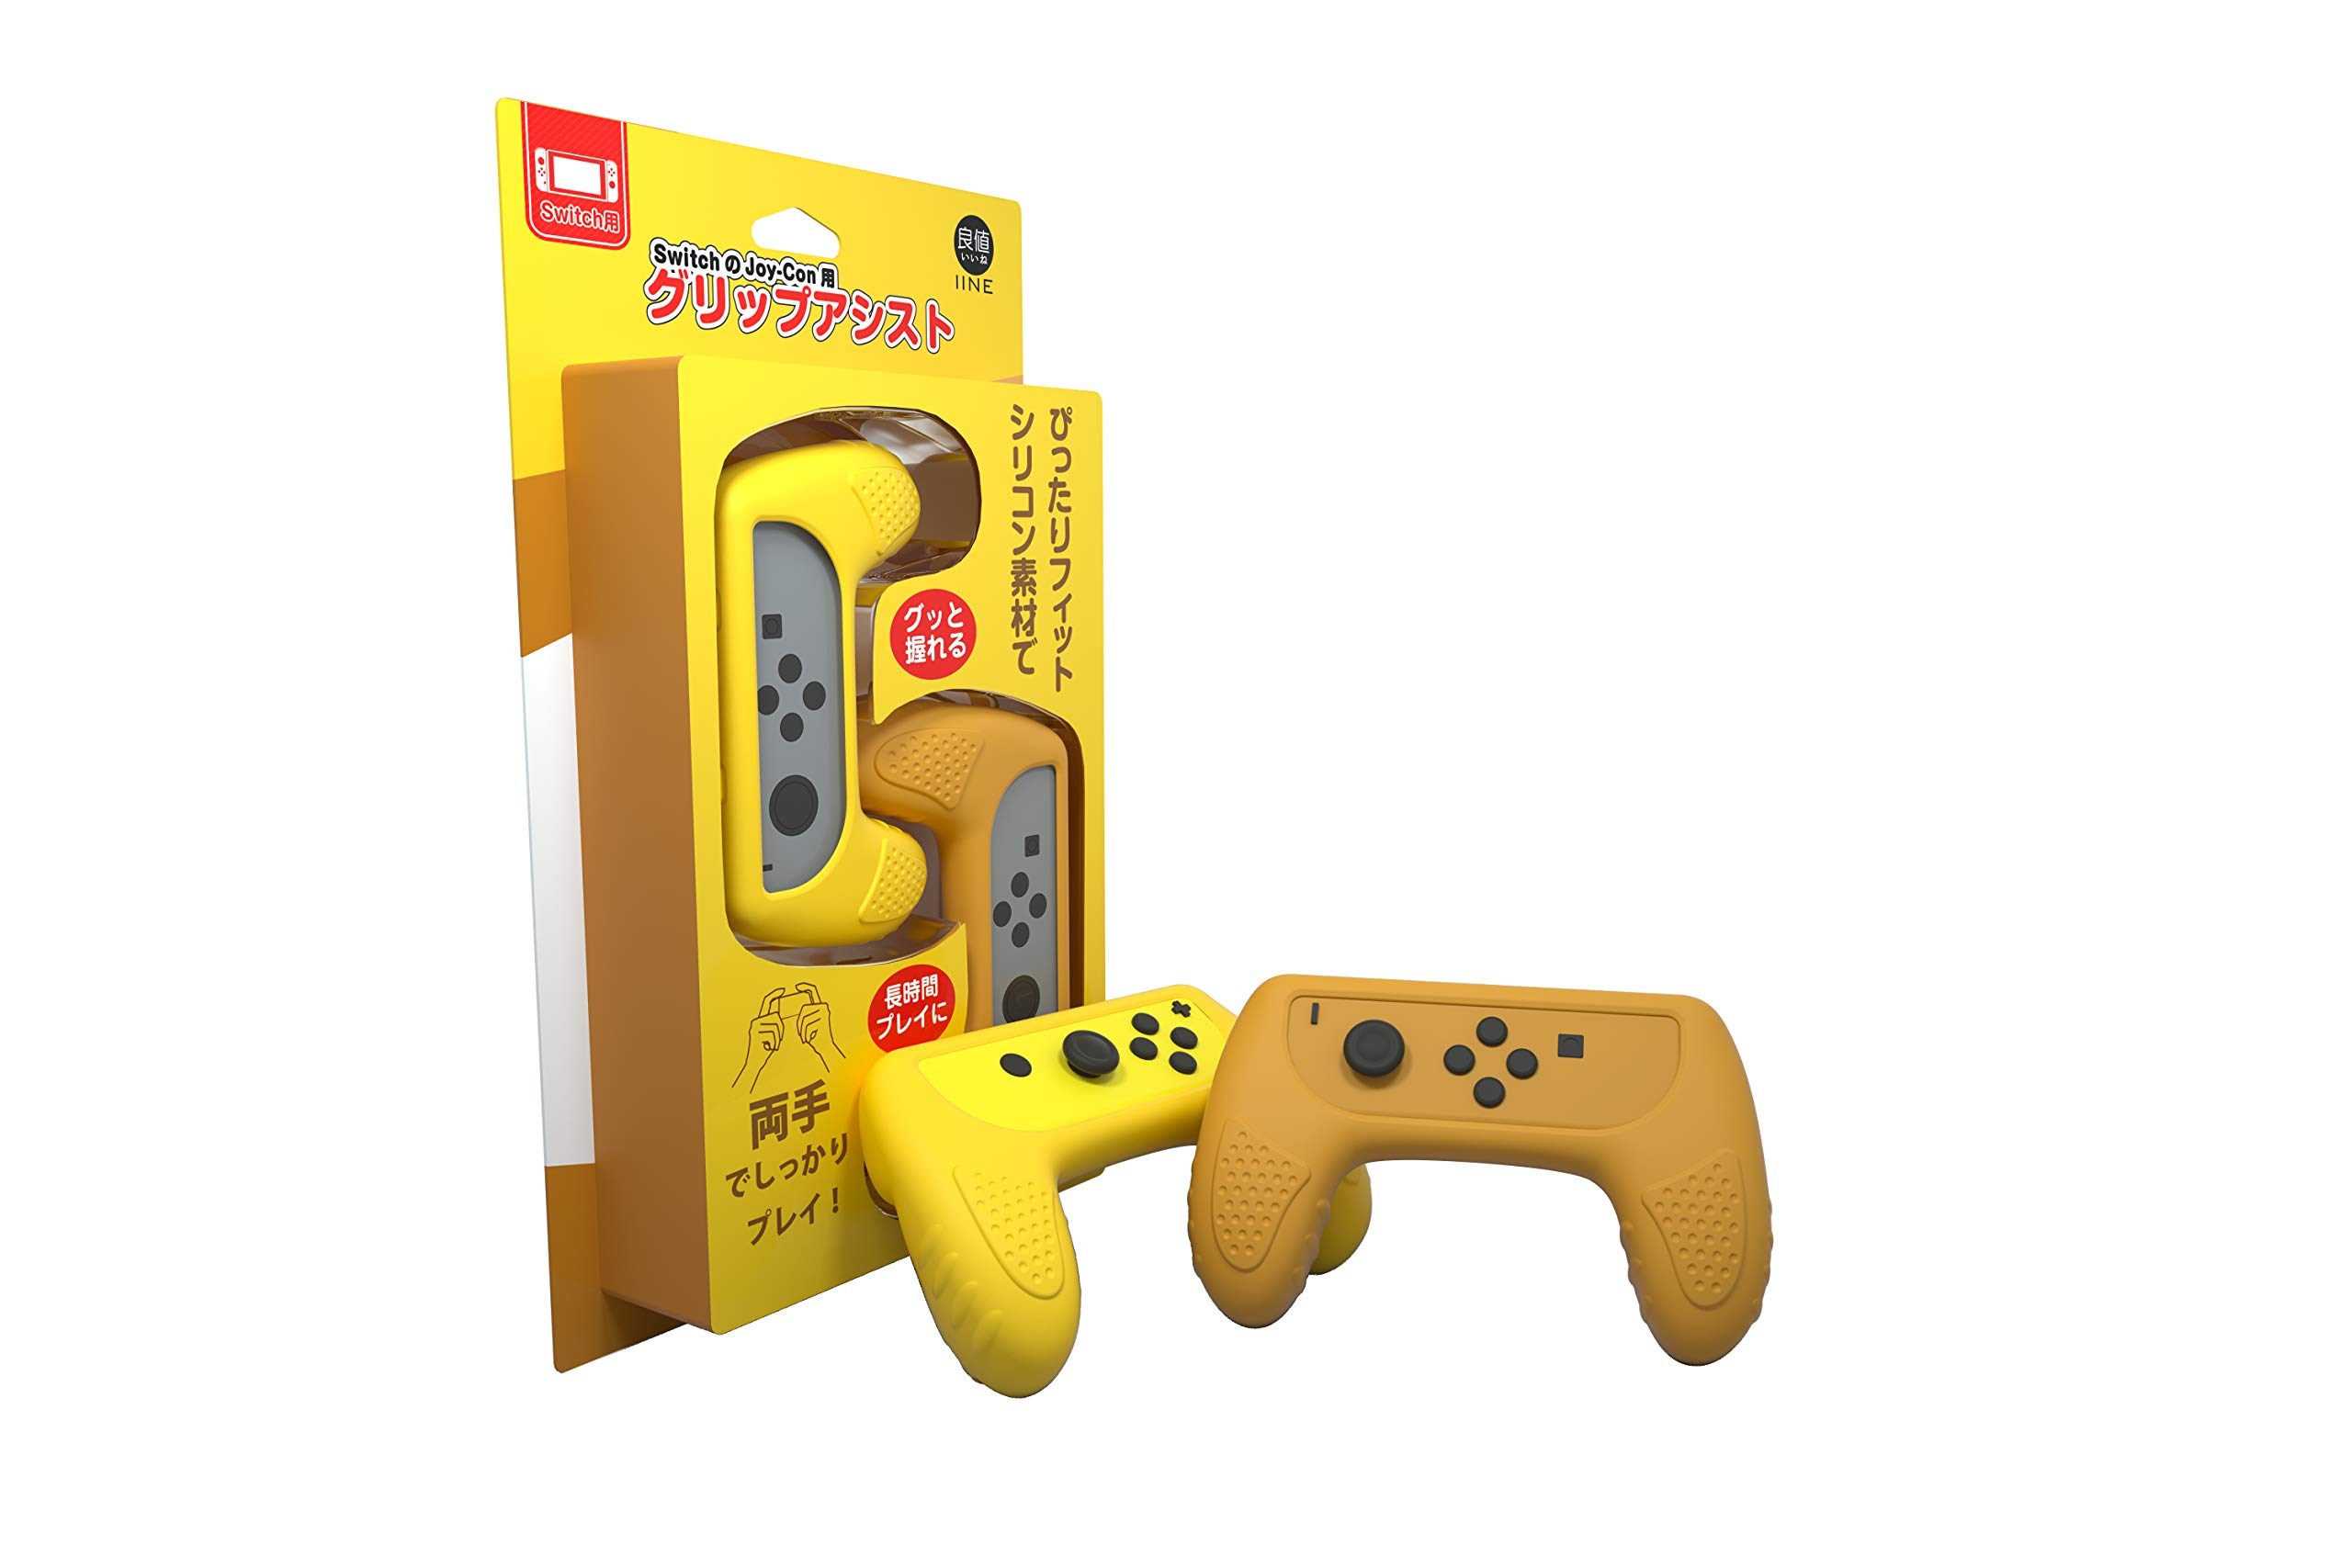 IINE Joy-Con Hand Grips for Nintendo Switch Silicone Case, Yellow and Brown color 2 Pack by IINE